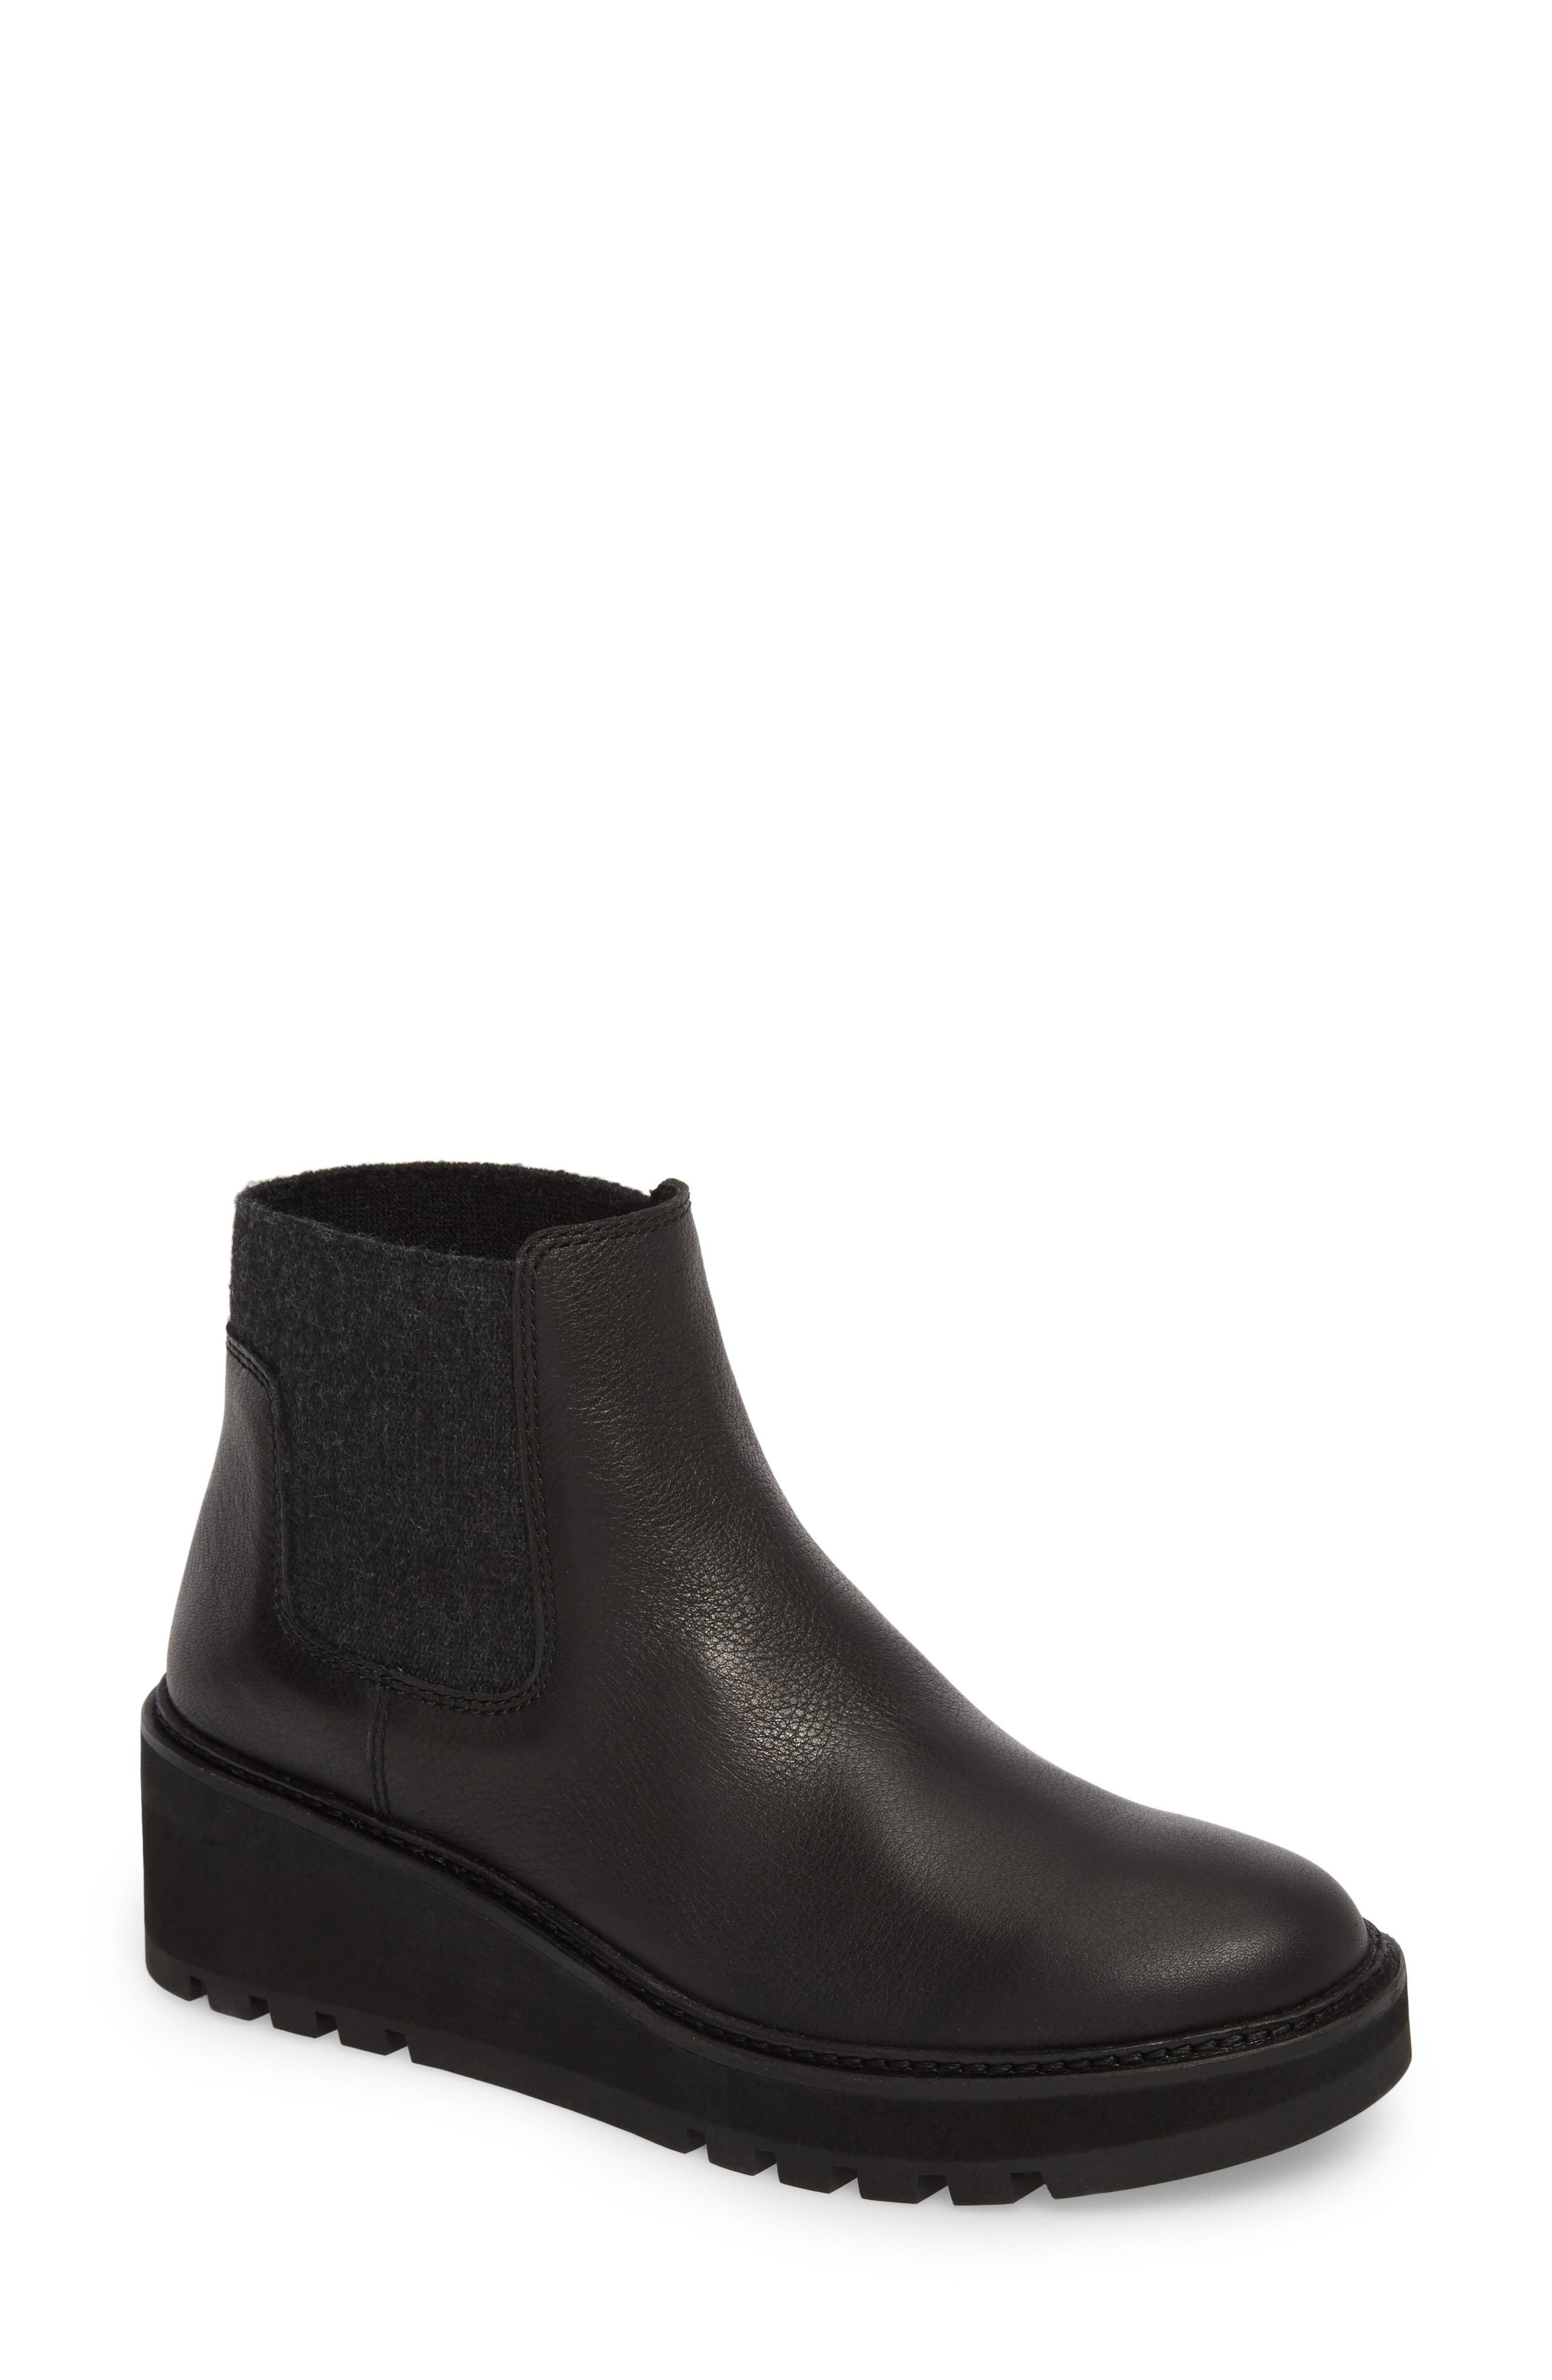 Wedge Chelsea Bootie,                         Main,                         color, Black Washed Leather